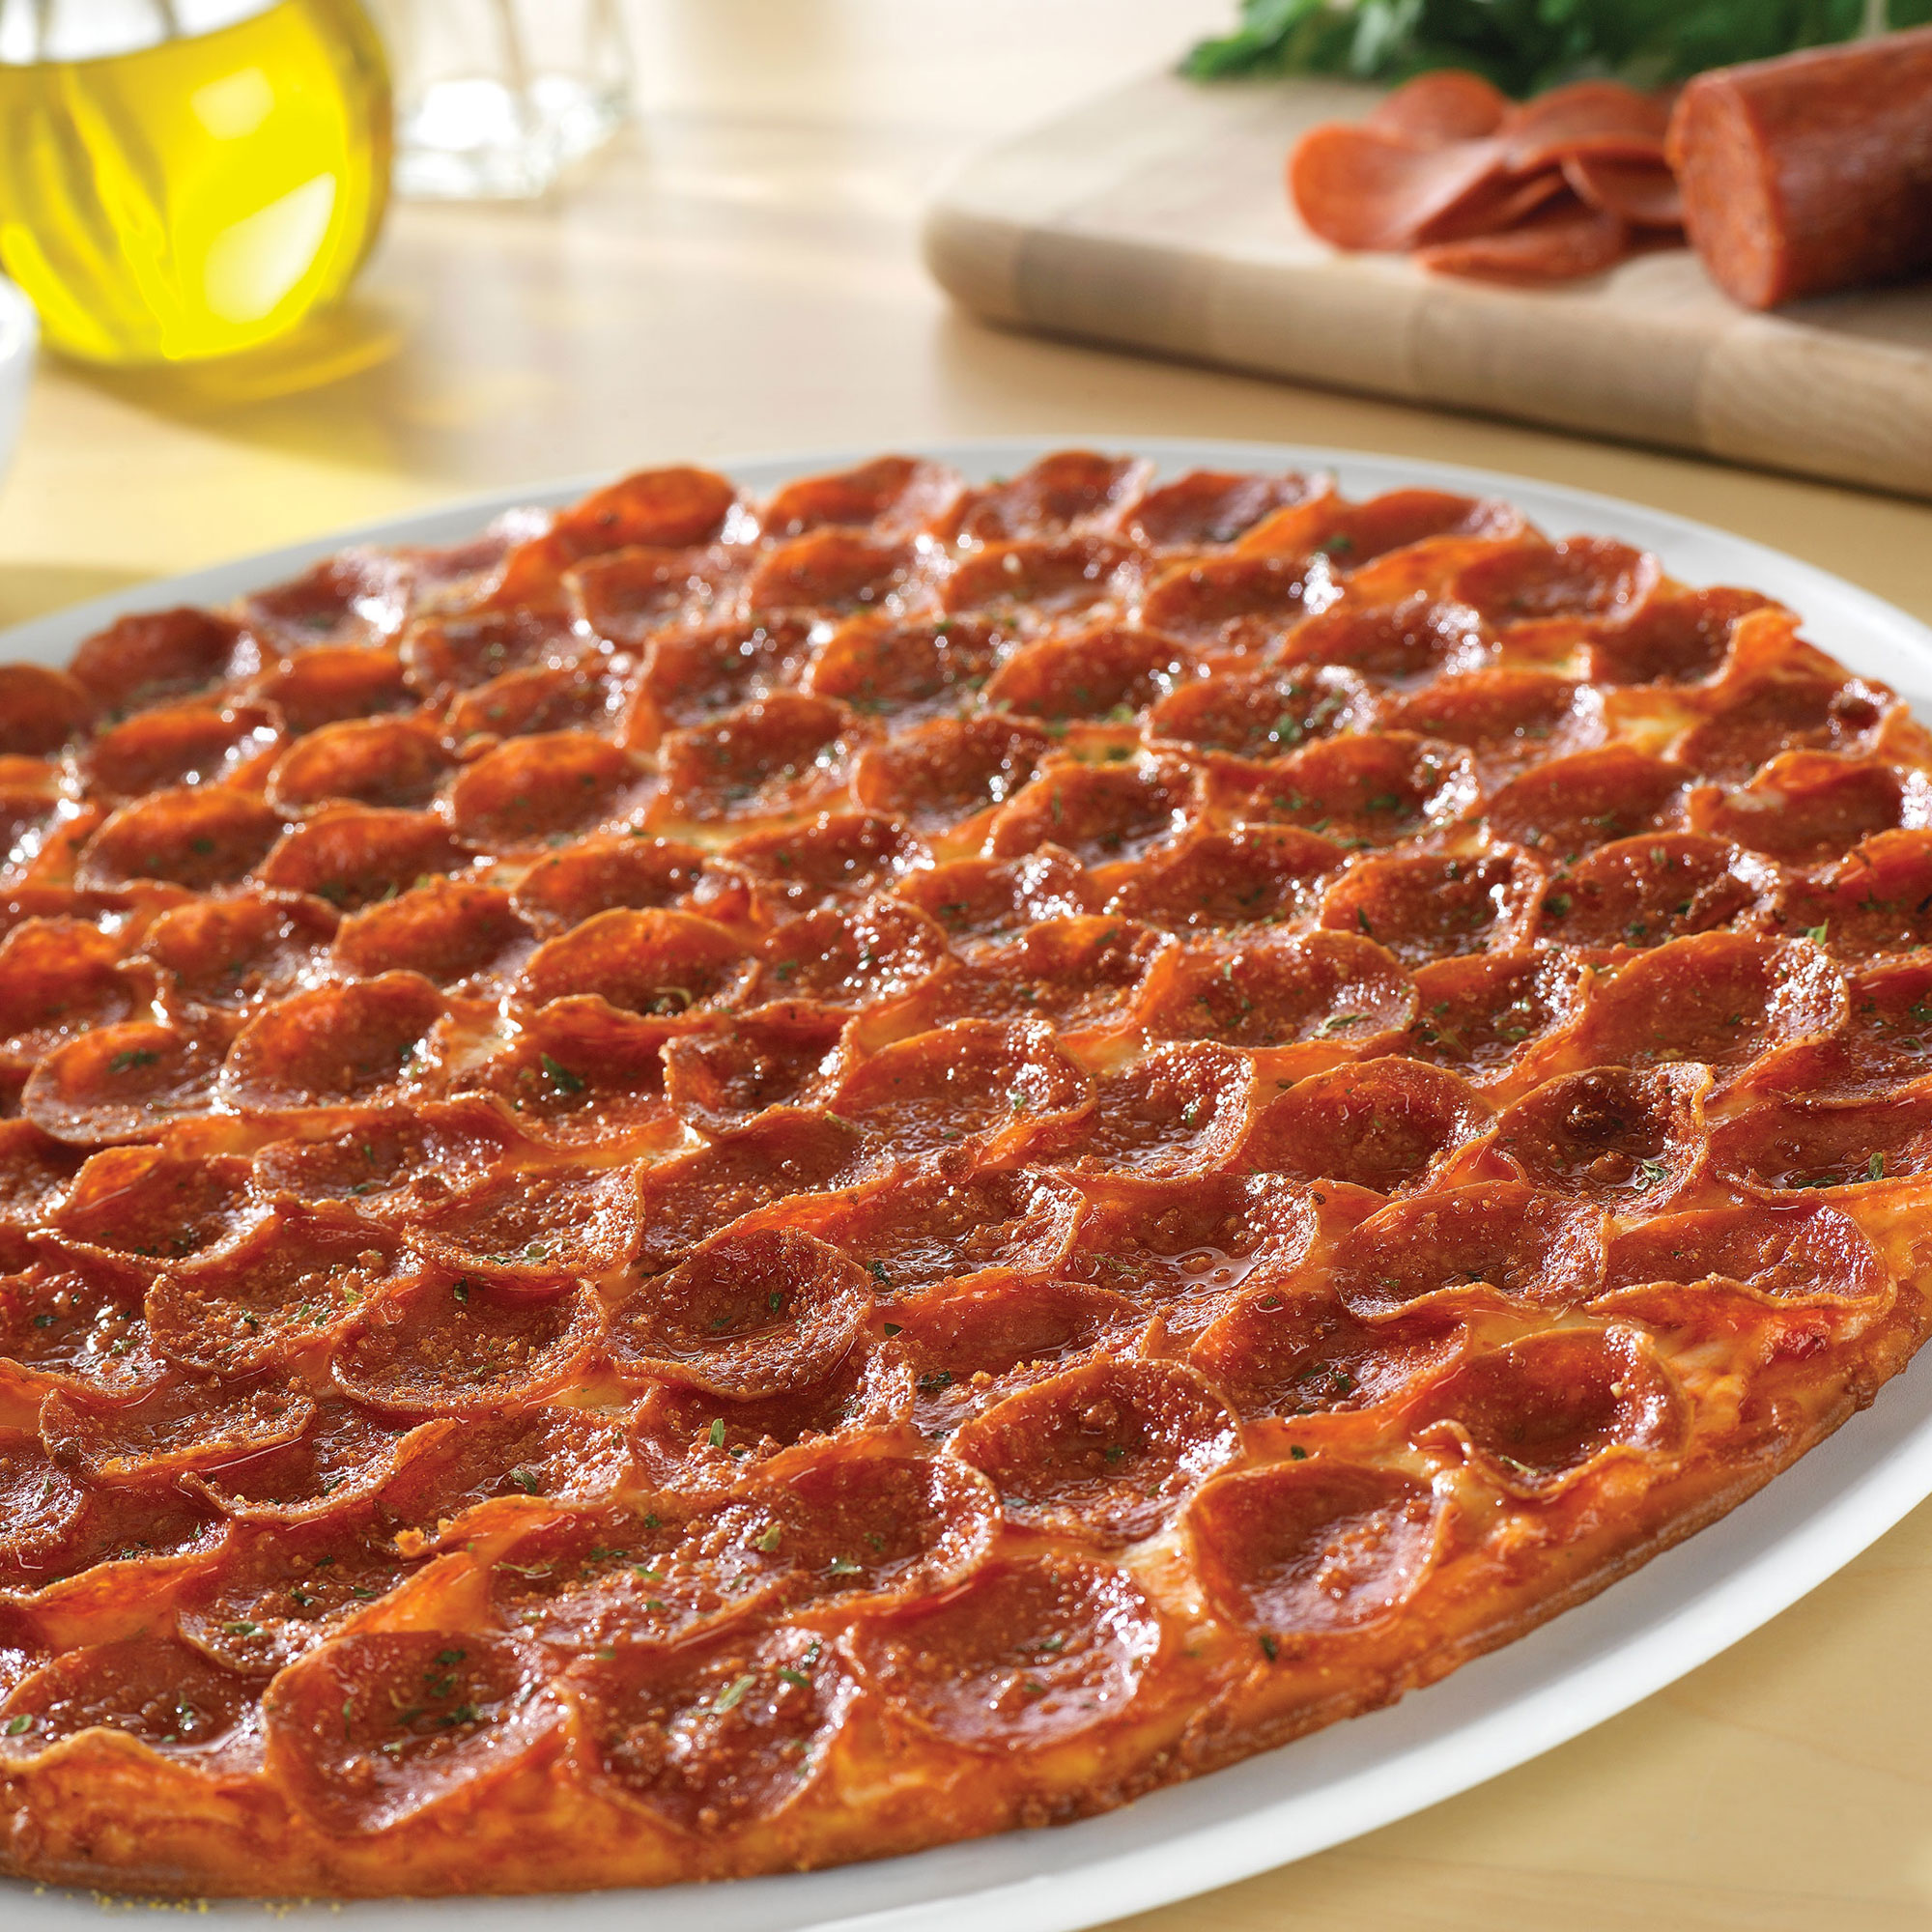 Donatos Pizza image 8